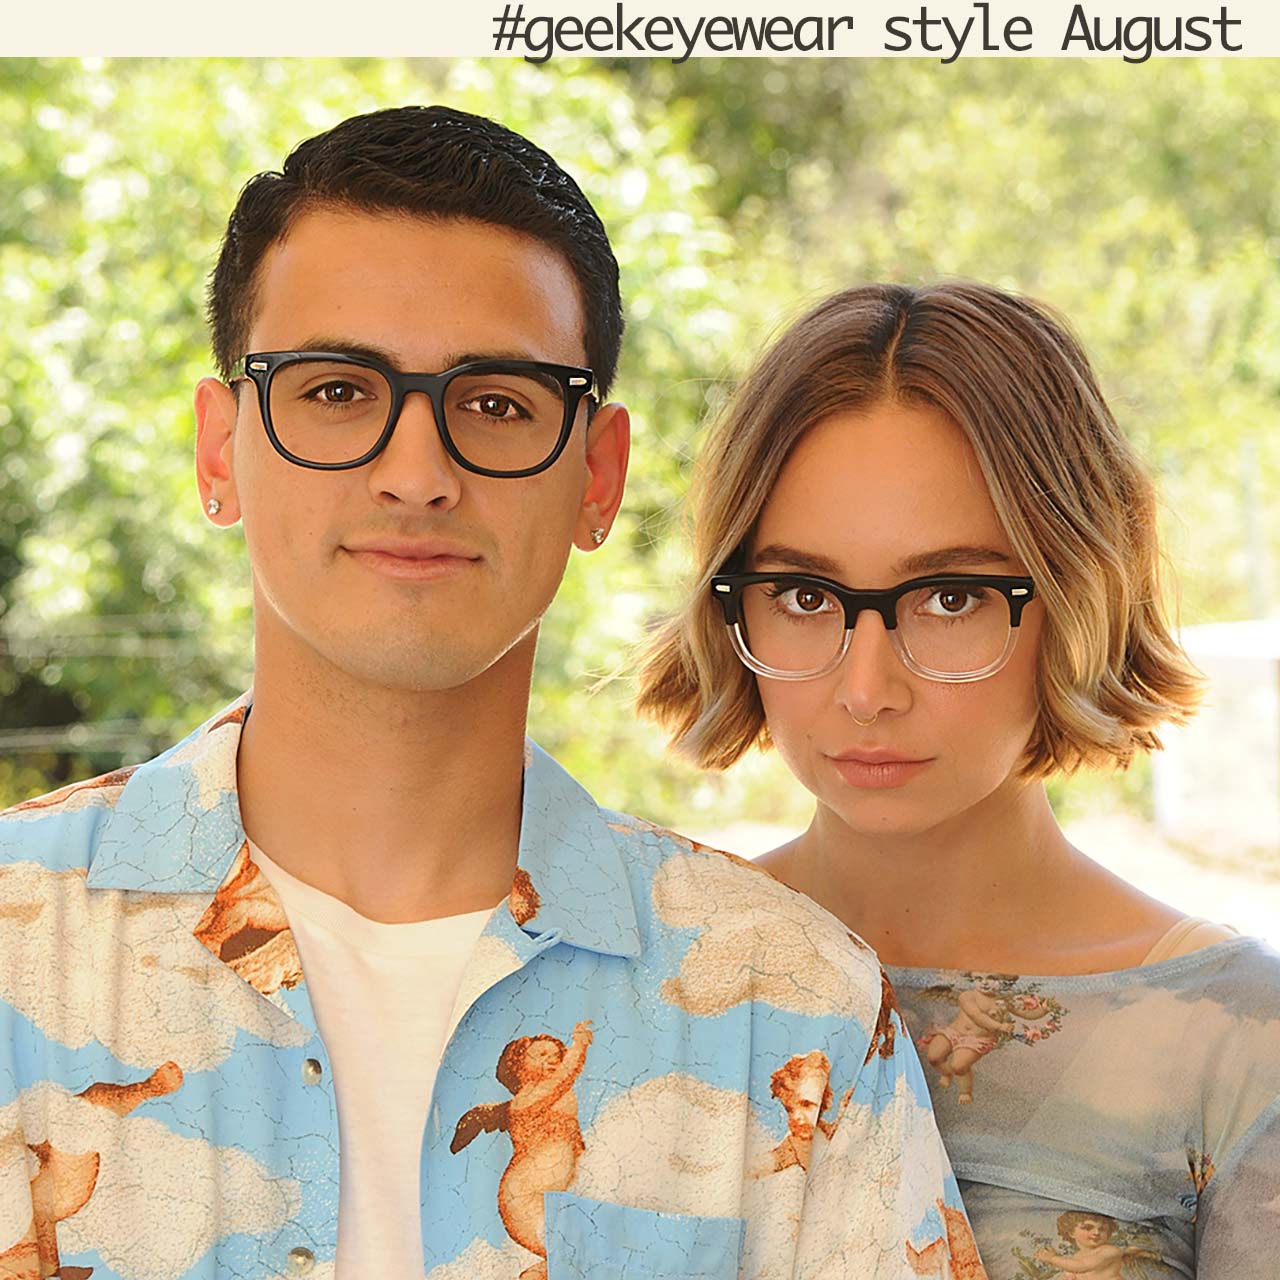 geek-eyewear-style-august-2019.jpg